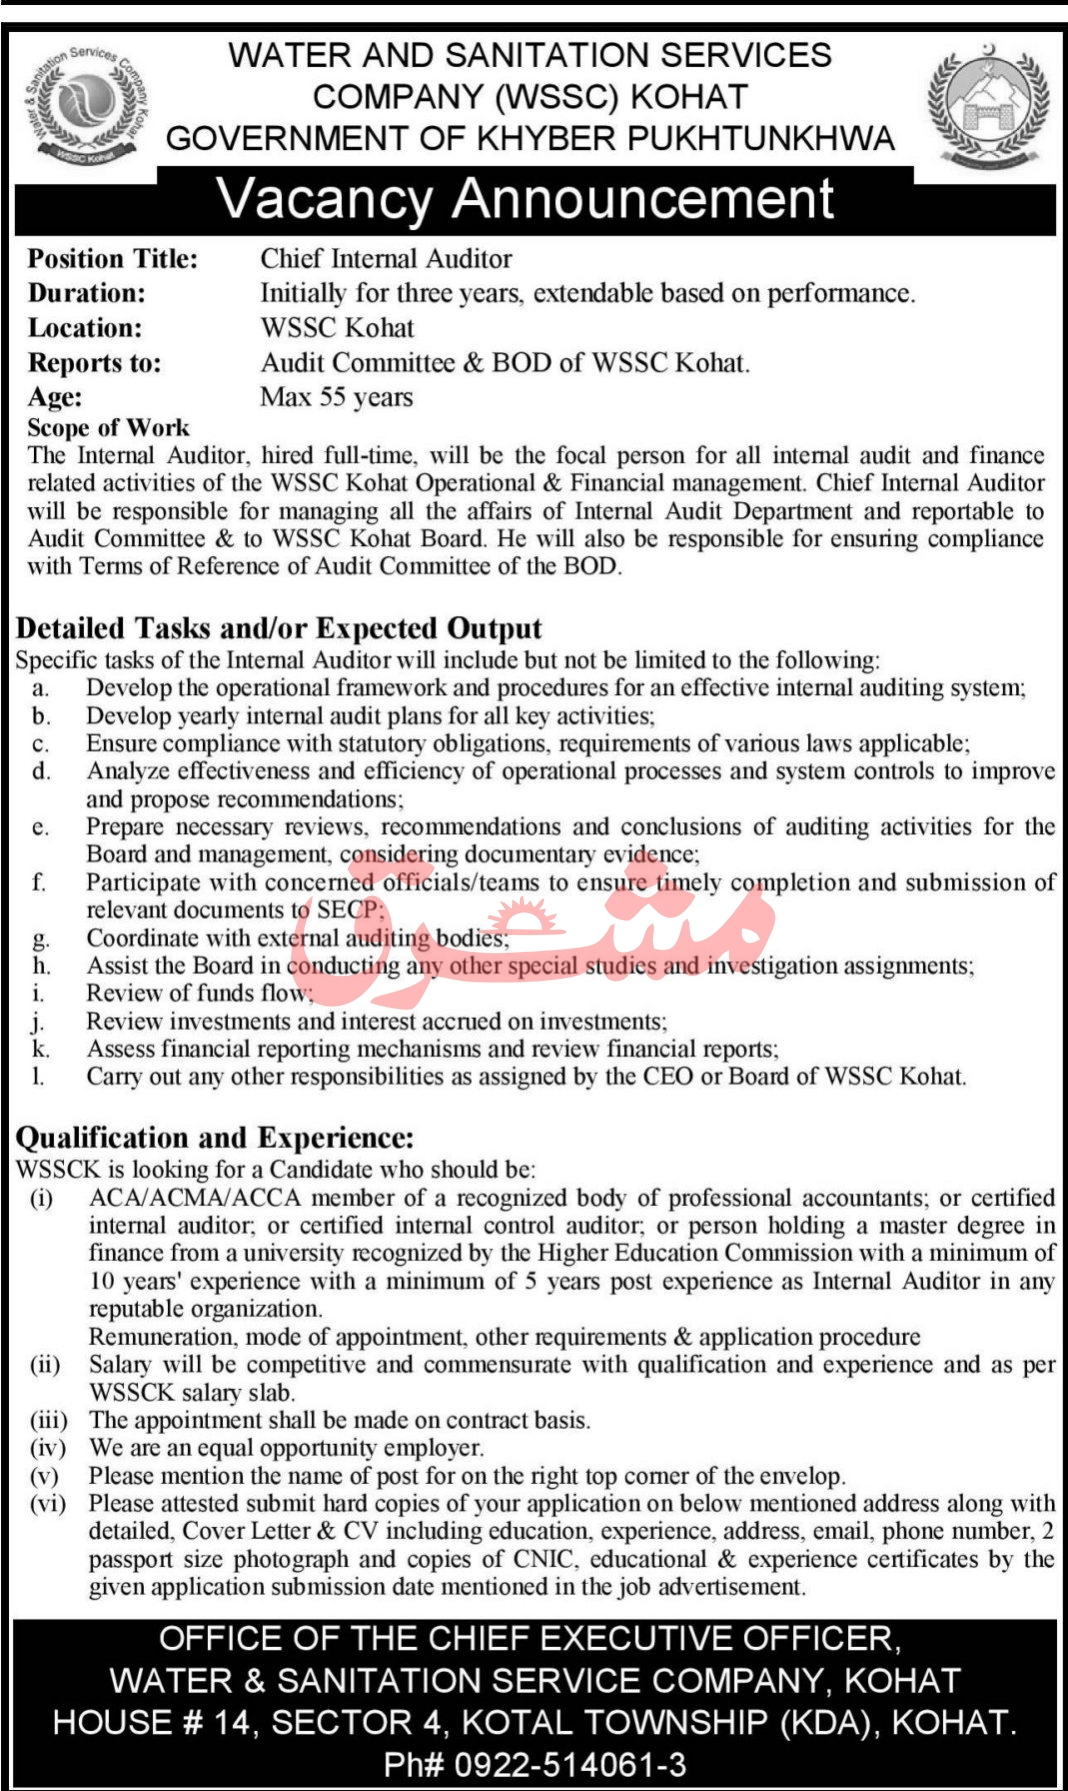 Water And Sanitation Services Company WSSC Job Advertisement For Chief Internal Auditor in Pakistan Jobs 2021